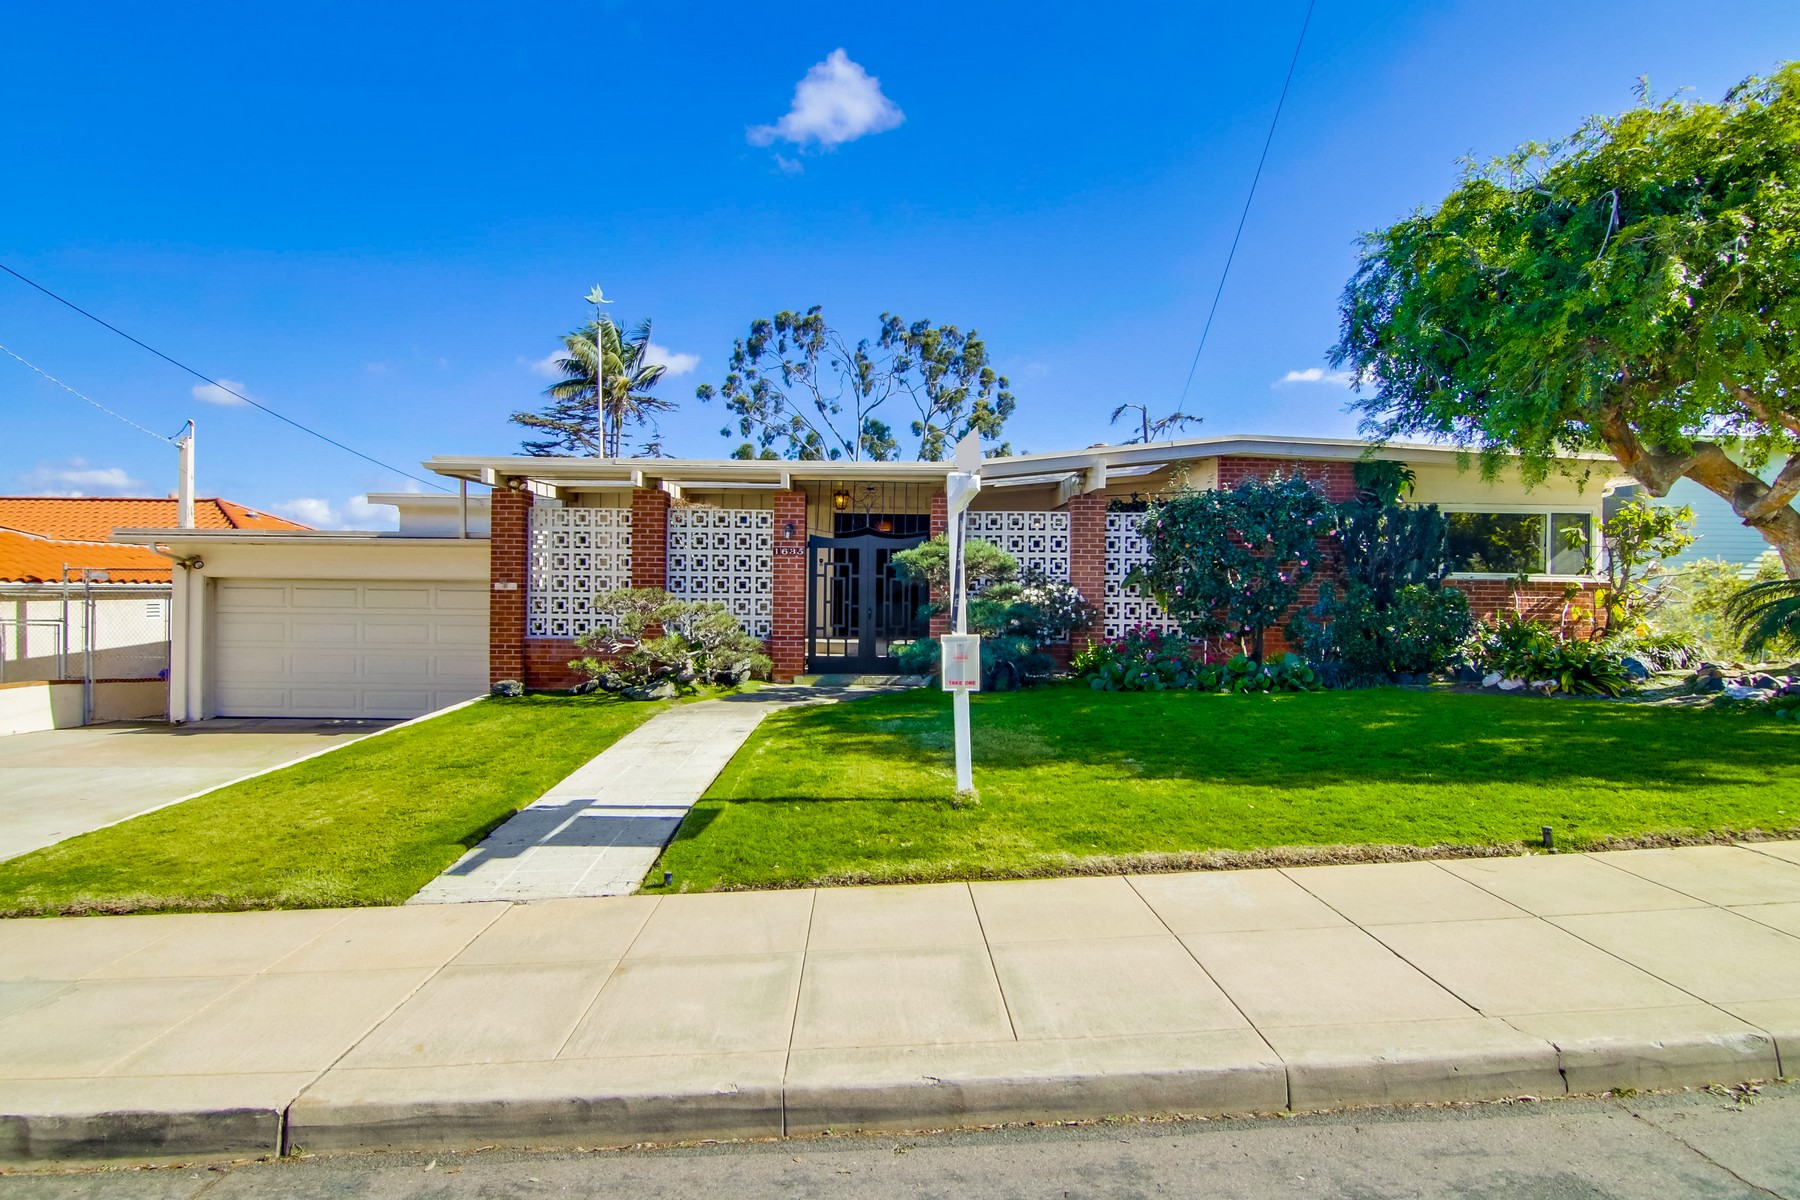 Single Family Home for Sale at 1635 Plum St San Diego, California, 92106 United States